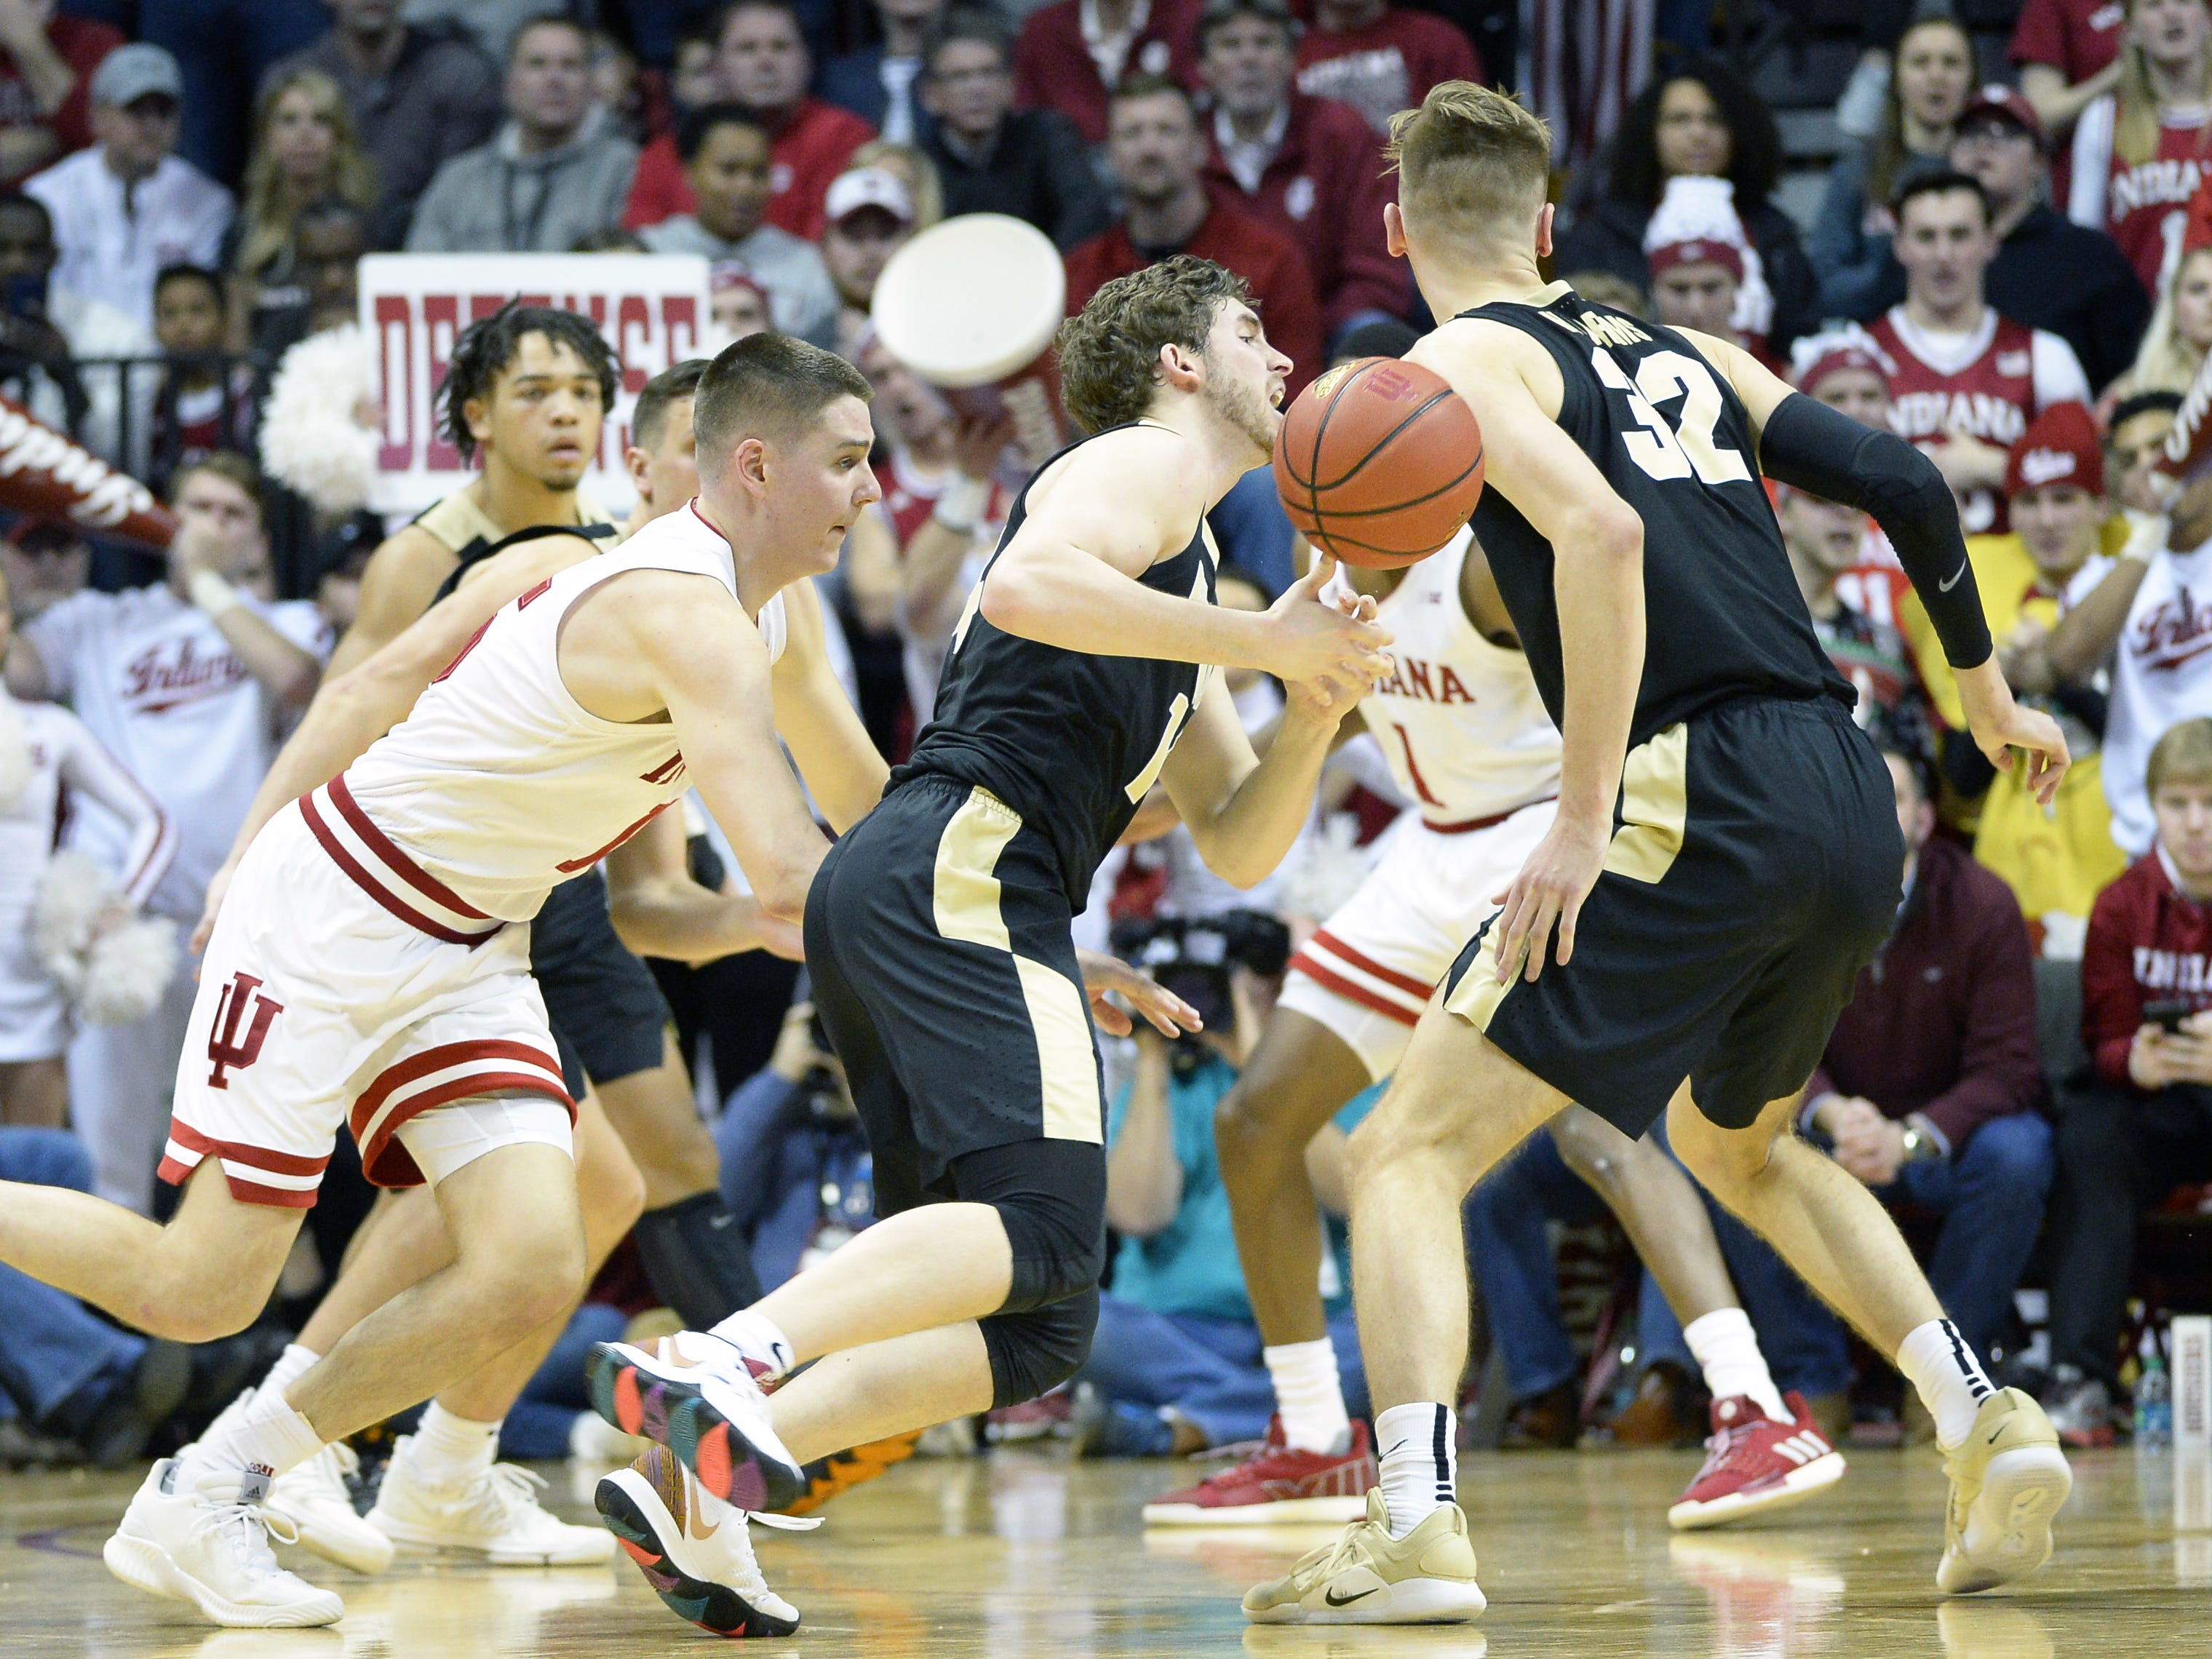 Purdue Boilermakers guard Ryan Cline (14) looses the ball during the Indiana-Purdue game at Simon Skjodt Assembly Hall in Bloomington, Ind., on Tuesday, Feb. 19, 2019.